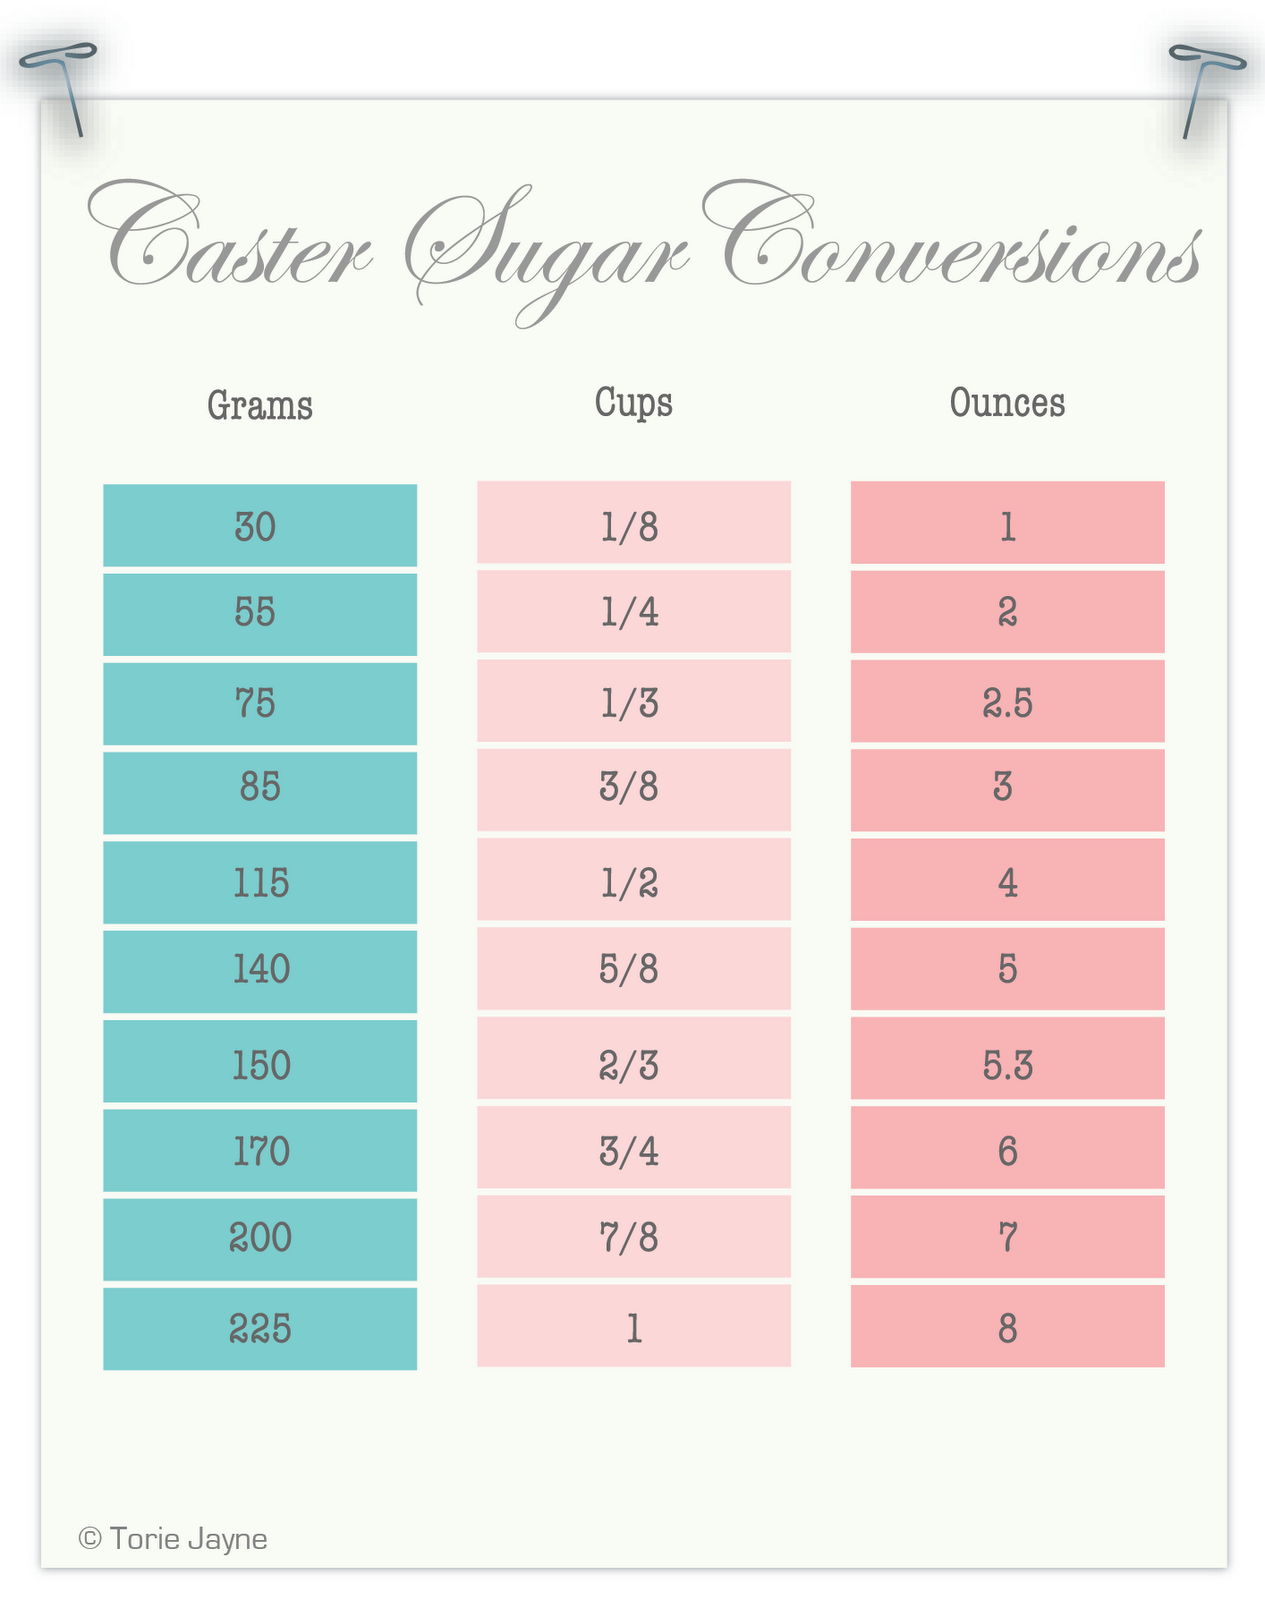 Caster sugar conversion chart superfine or baking sugar in us